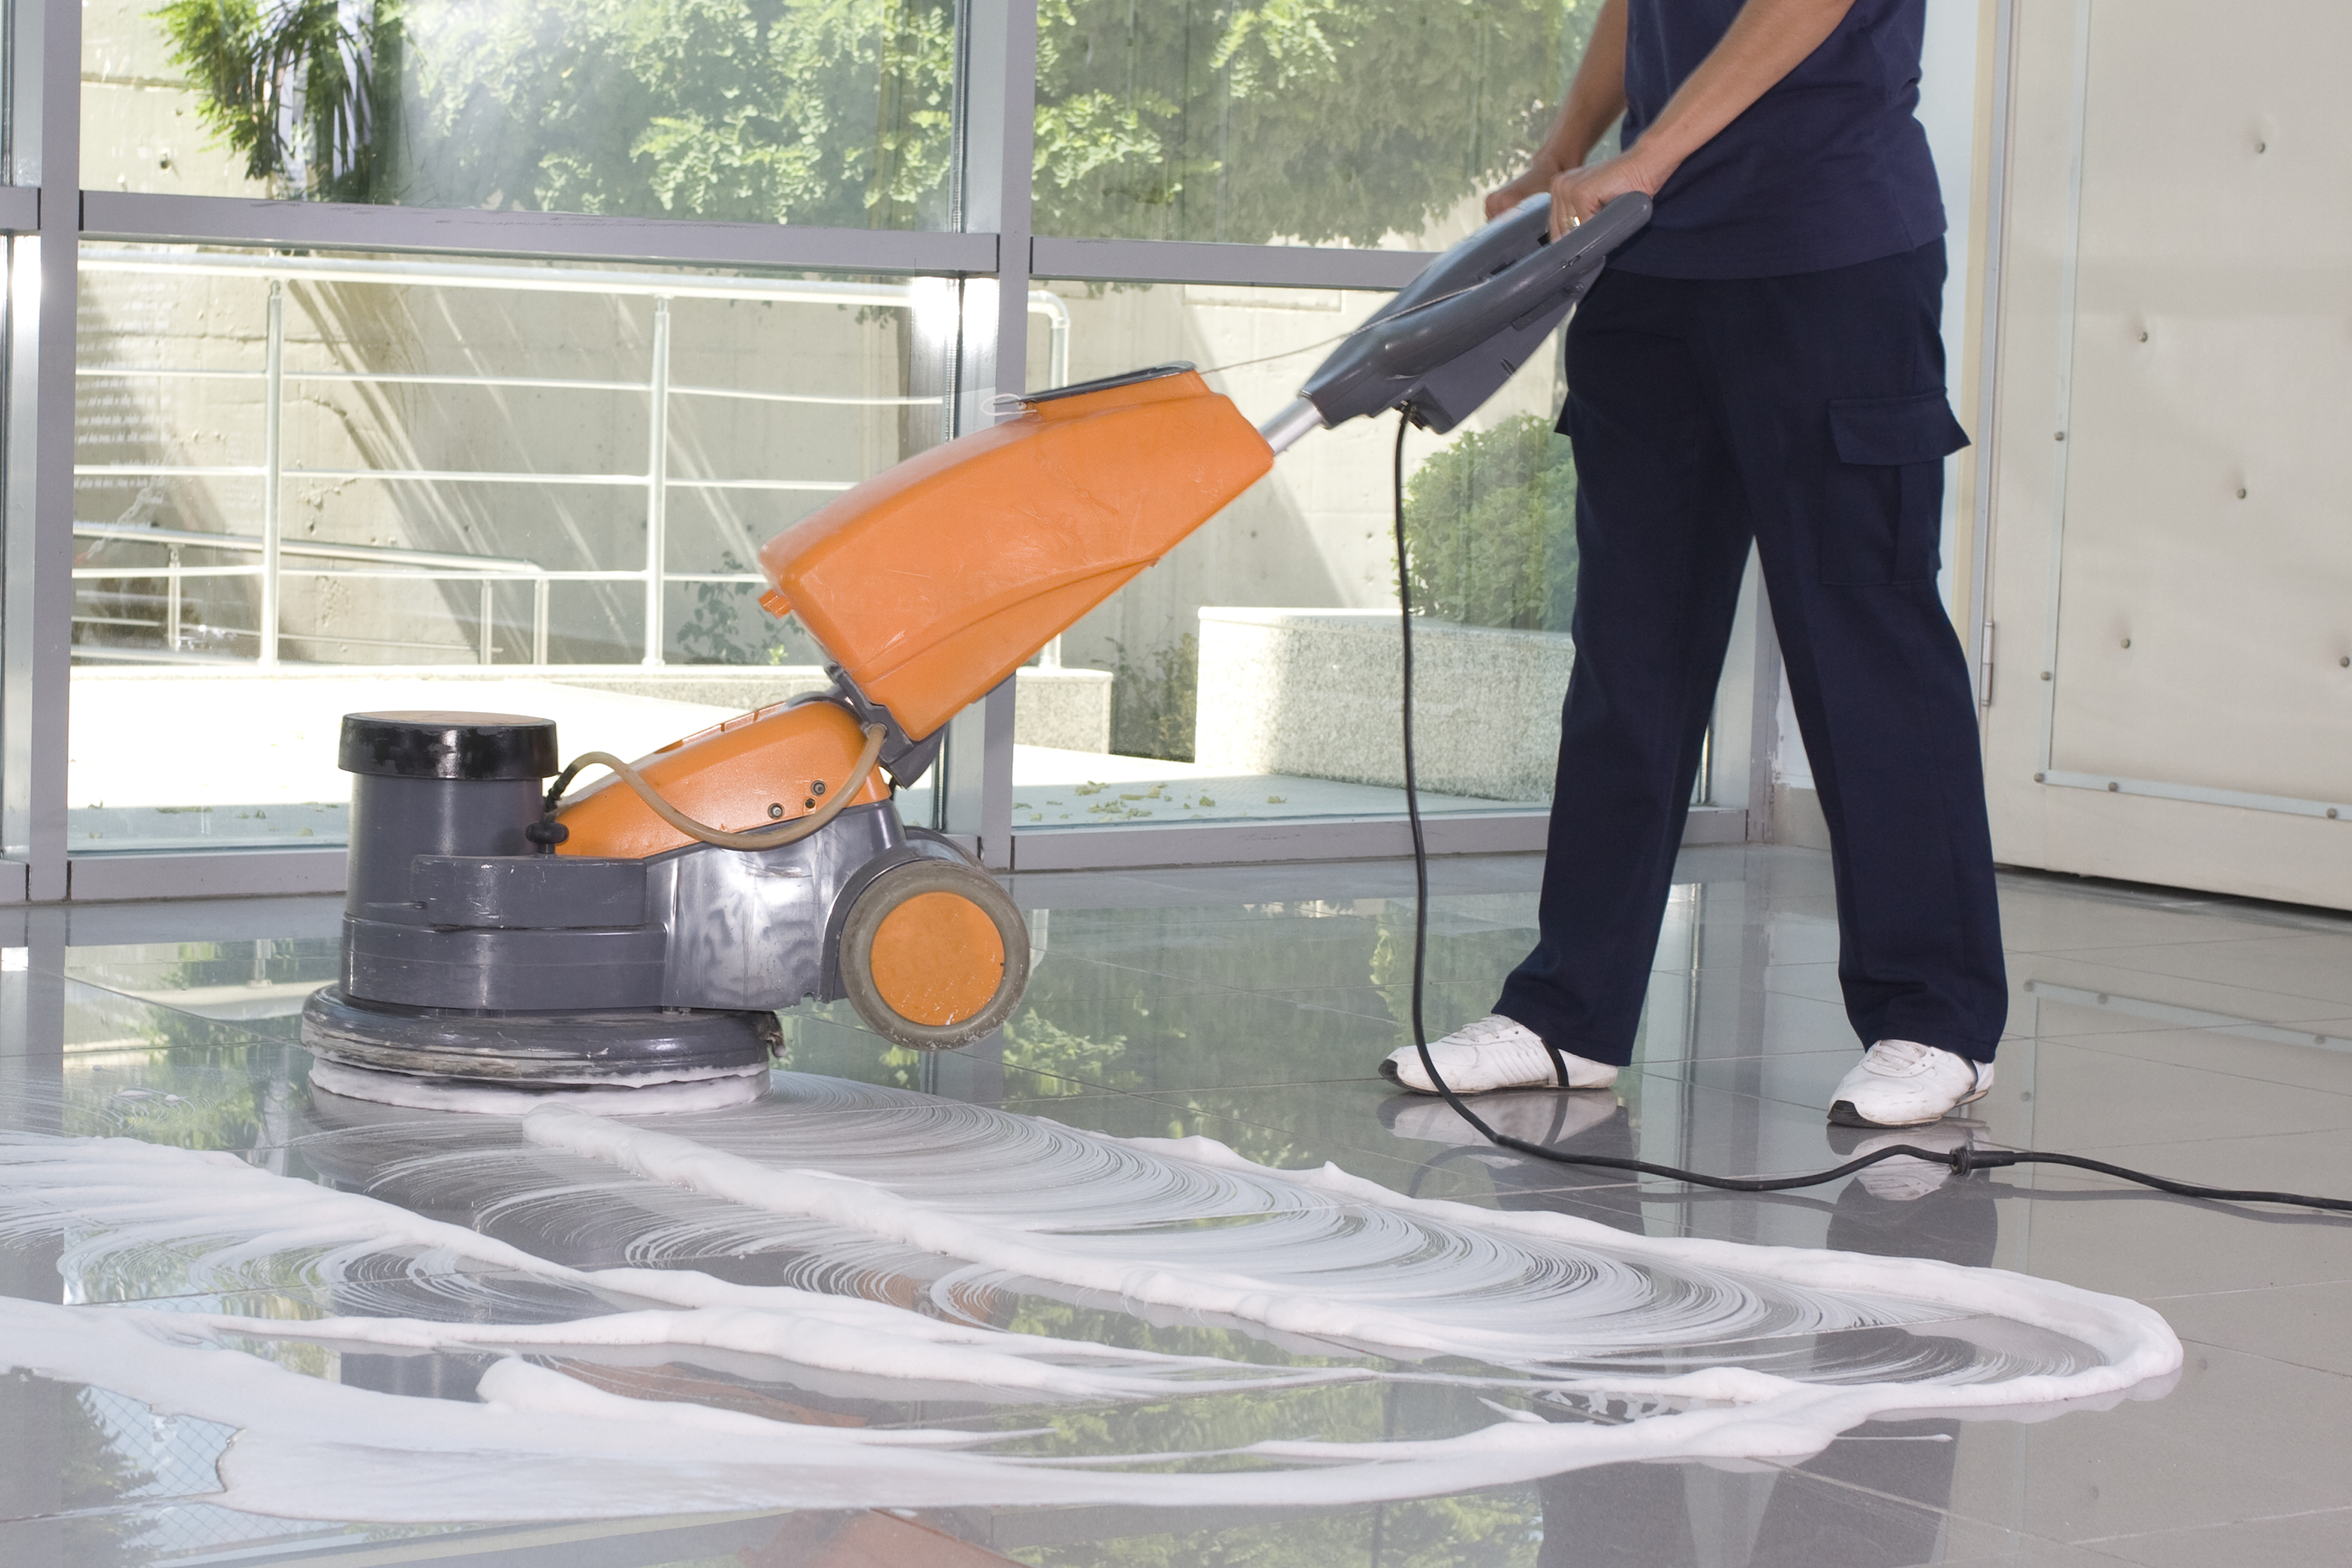 A person cleaning a floor with a floor cleaning machine.